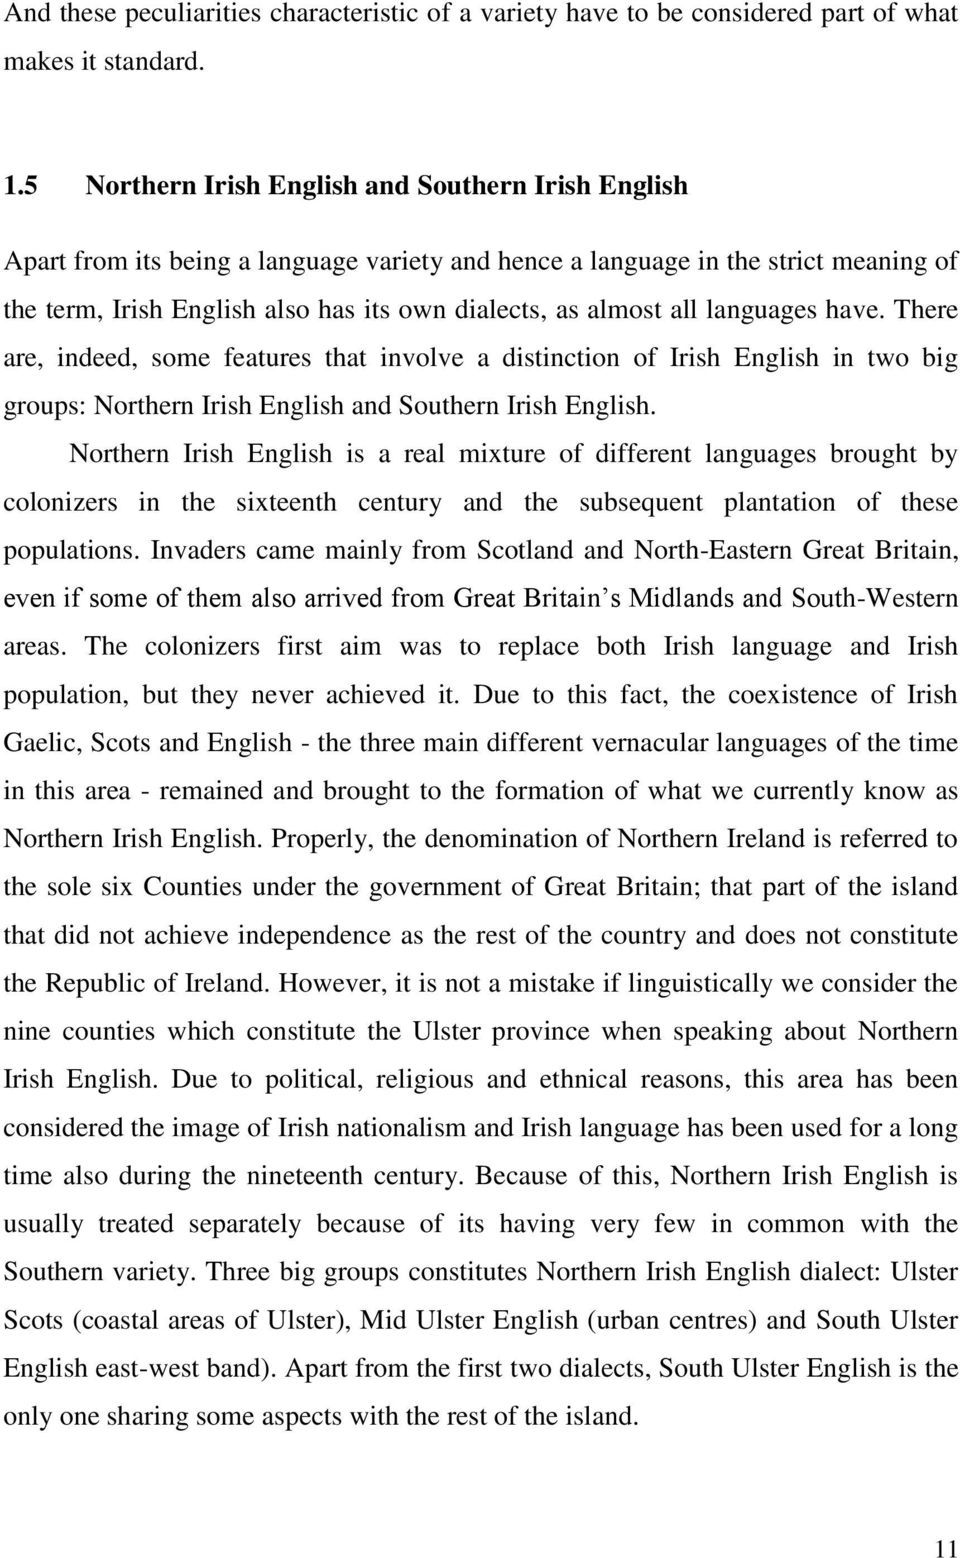 all languages have. There are, indeed, some features that involve a distinction of Irish English in two big groups: Northern Irish English and Southern Irish English.